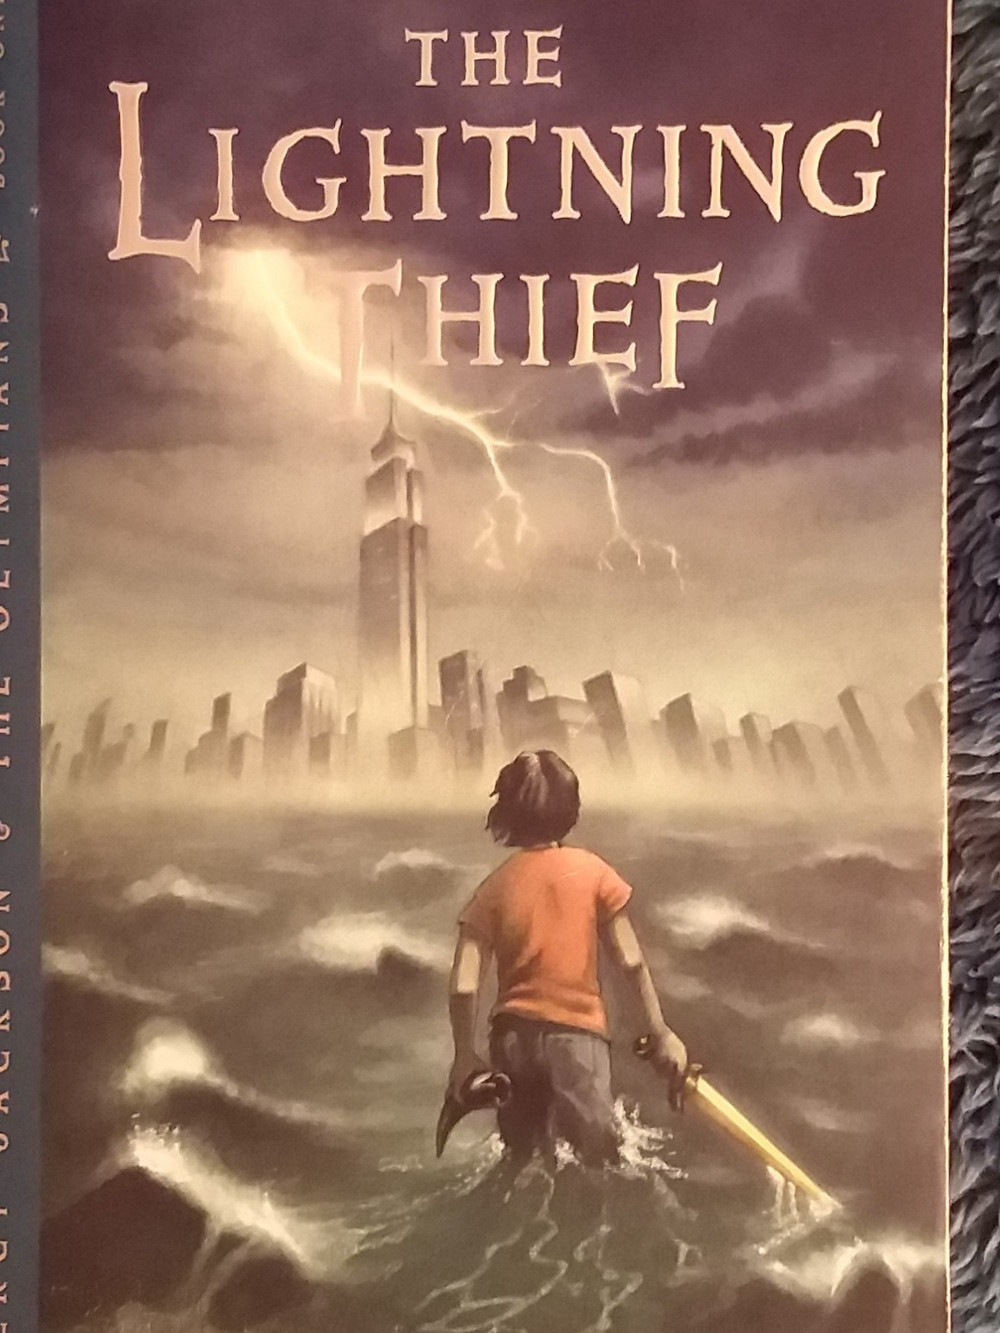 The Cover of Percy Jackson and the Olympians: The Lightning Thief by Rick Riordan